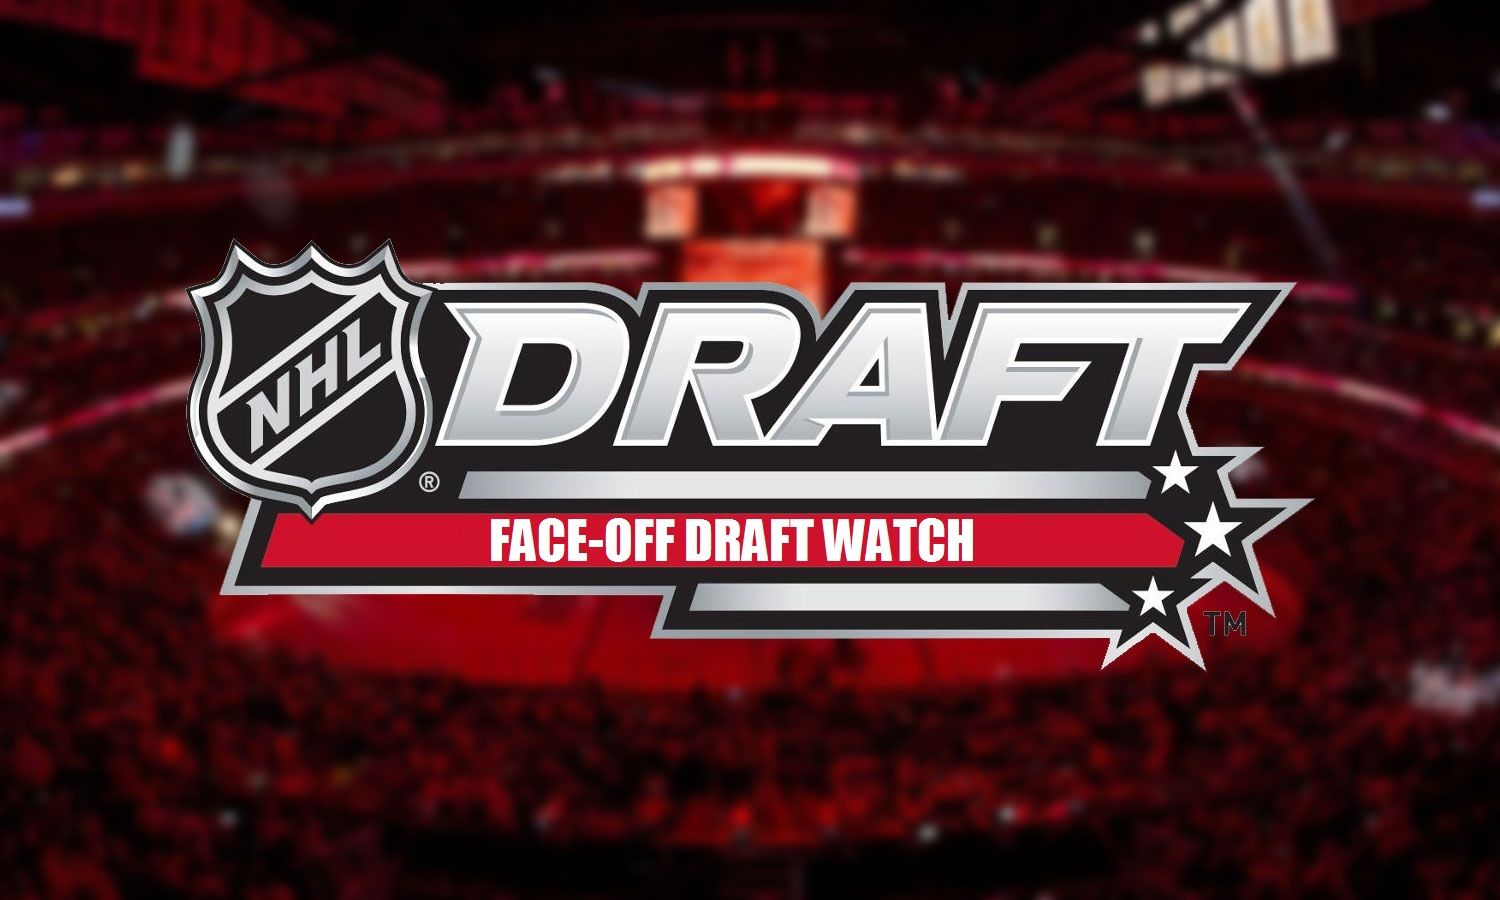 DraftWatch Face-Off